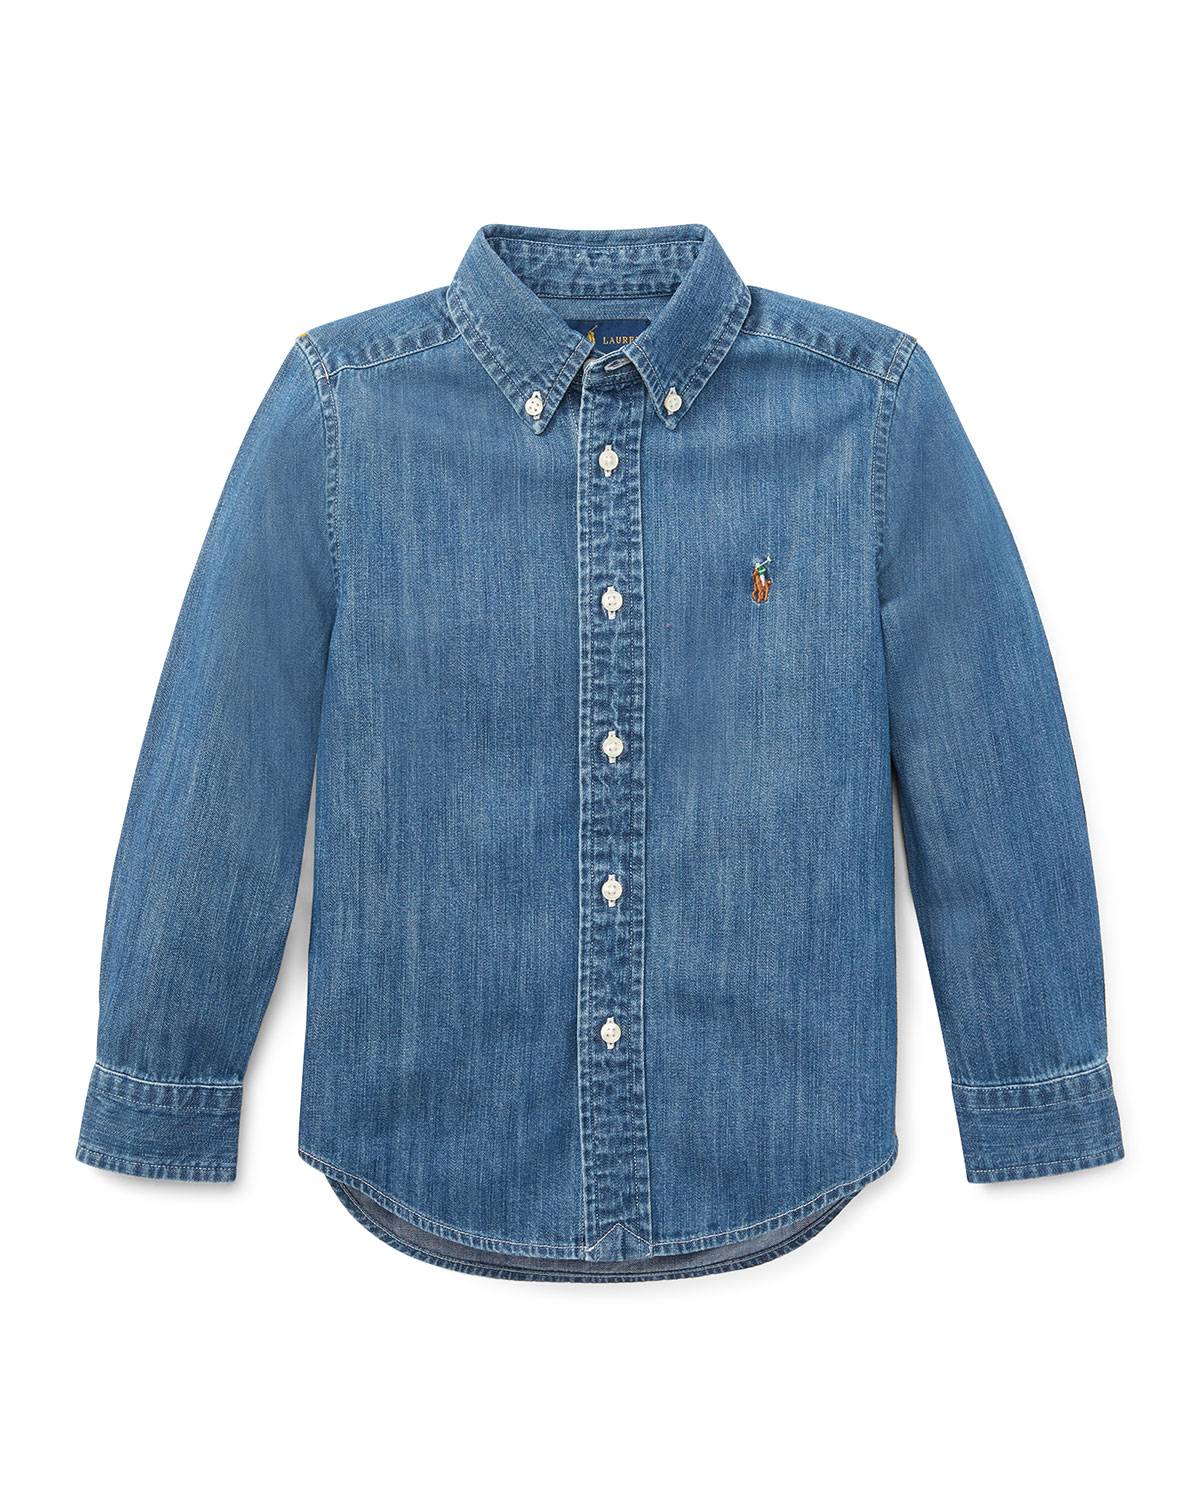 Ralph Lauren Childrenswear Kids' Woven Chambray Shirt In Dark Blue